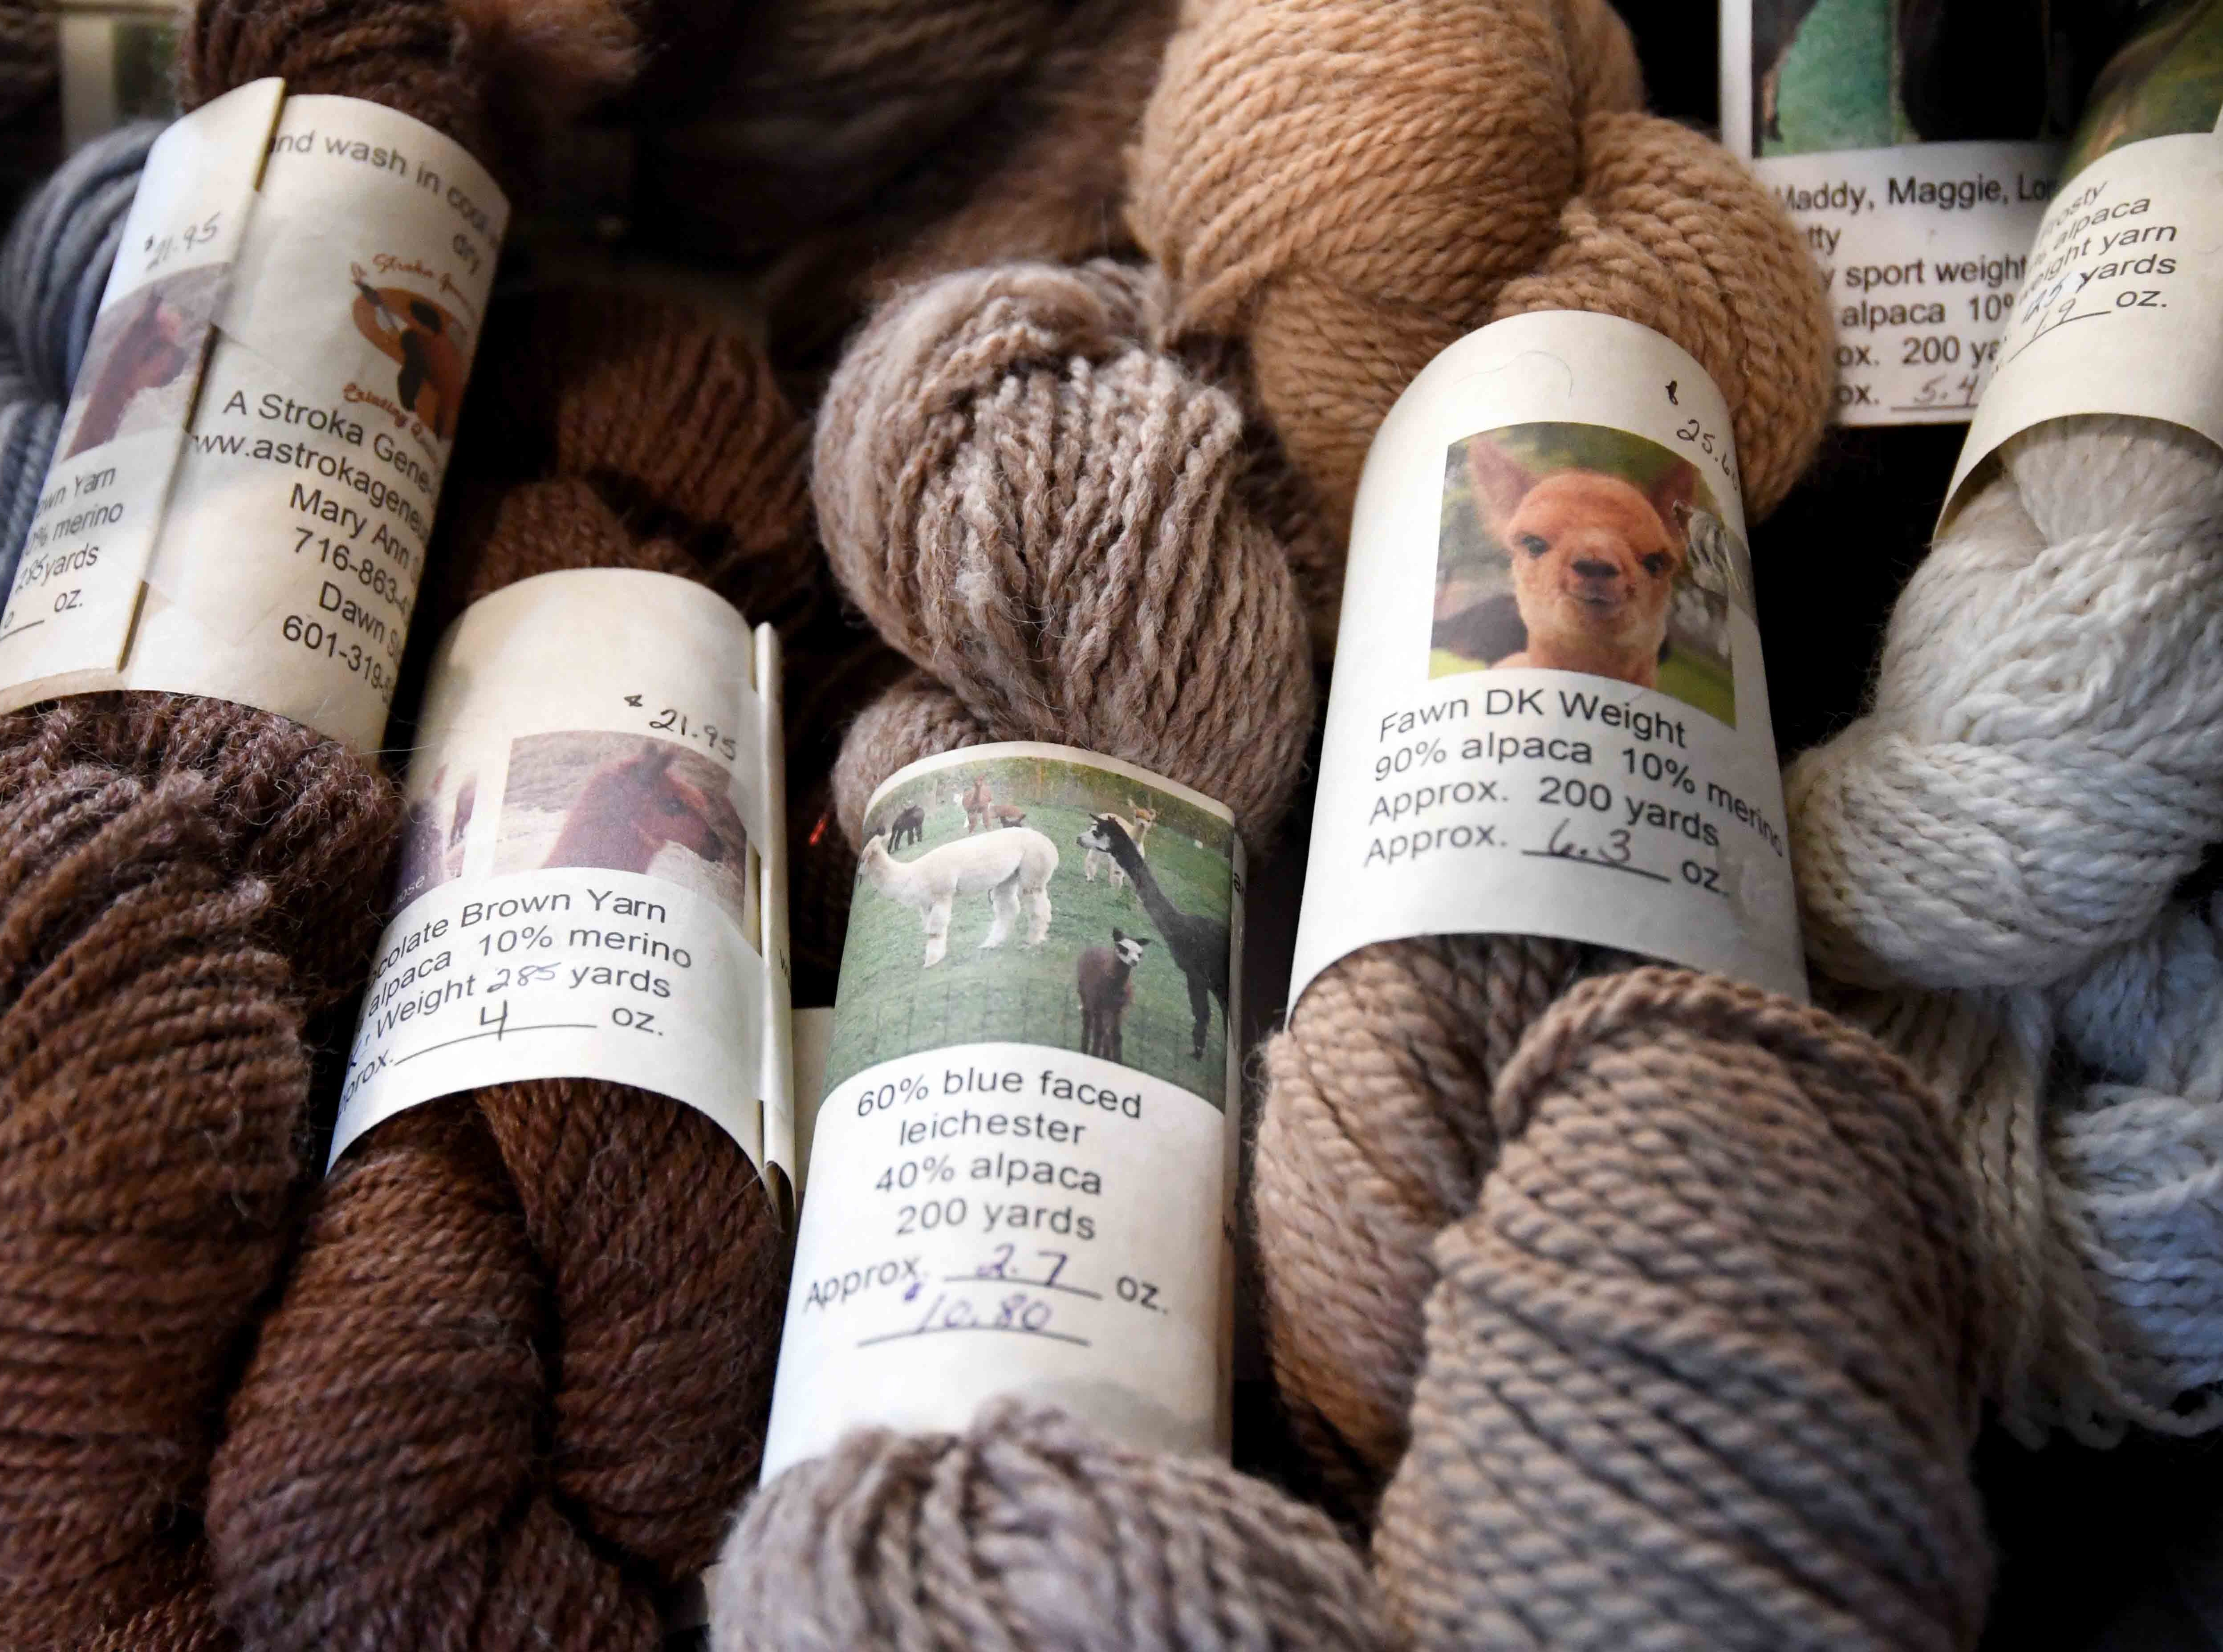 Mary Ann Stroka sells alpaca yarn at her shop. The yarn is labeled with the name and of the alpaca.